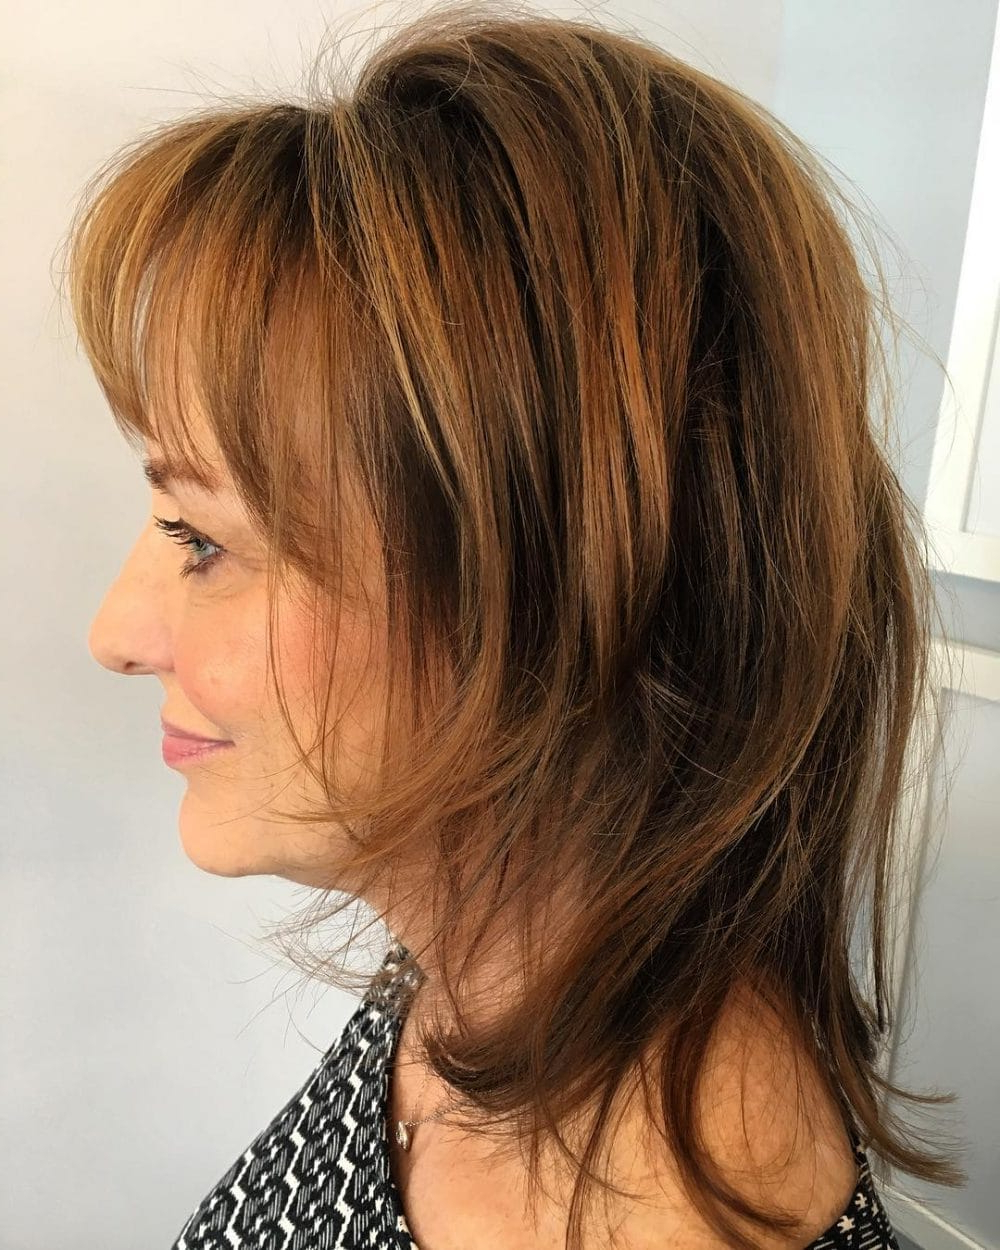 26 Modern Shag Haircuts To Try In 2019 Regarding Latest Medium Shag Hairstyles With Long Side Bangs (View 14 of 20)